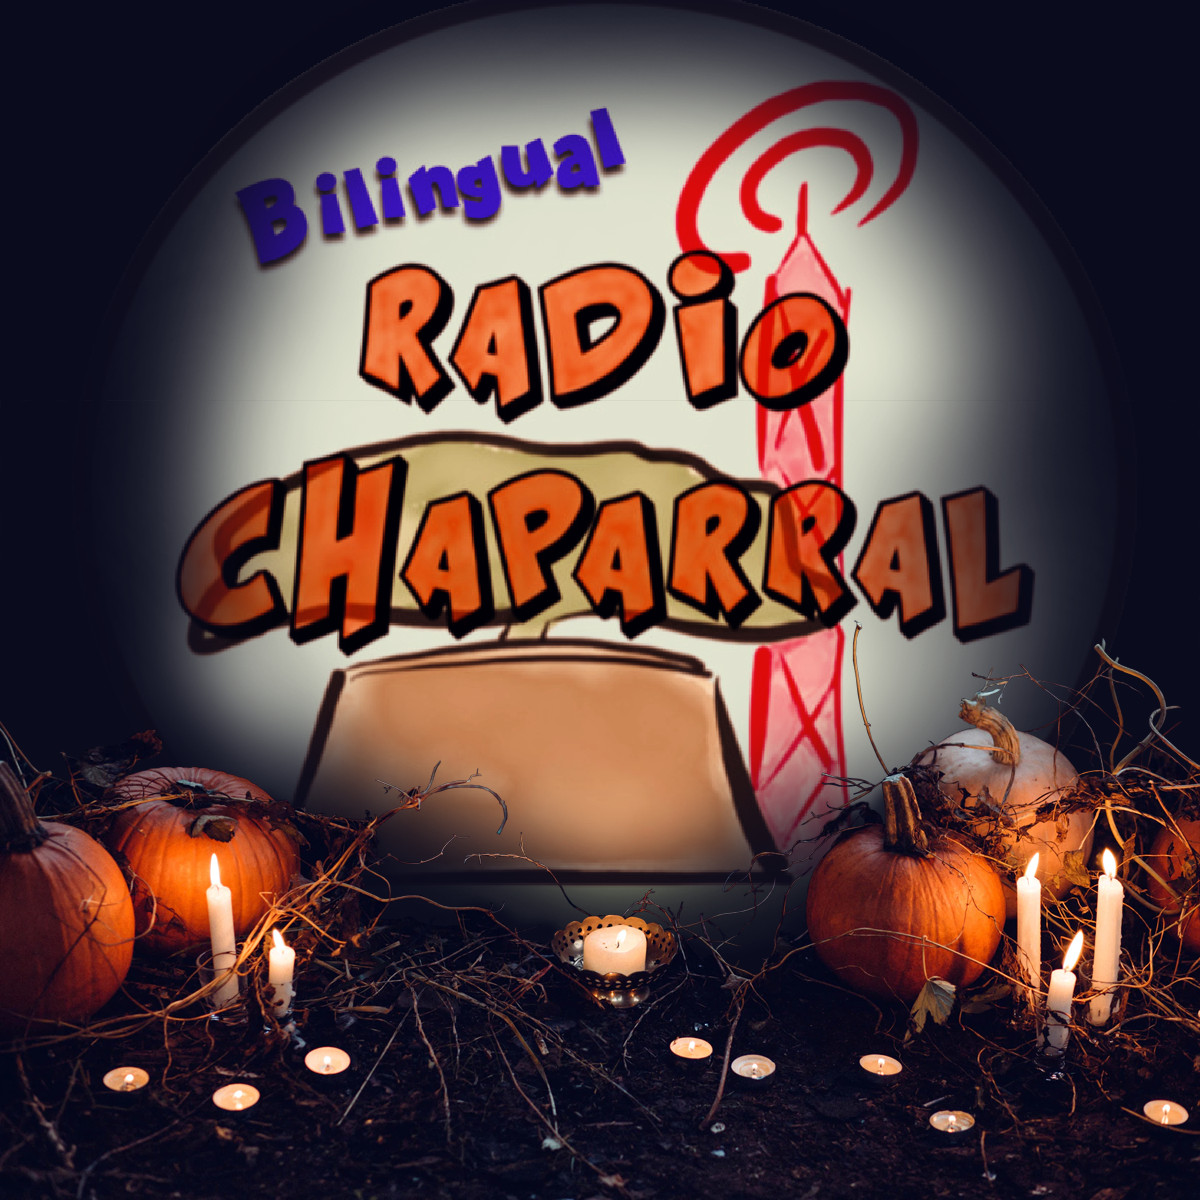 Foto Radio Chaparral Halloween